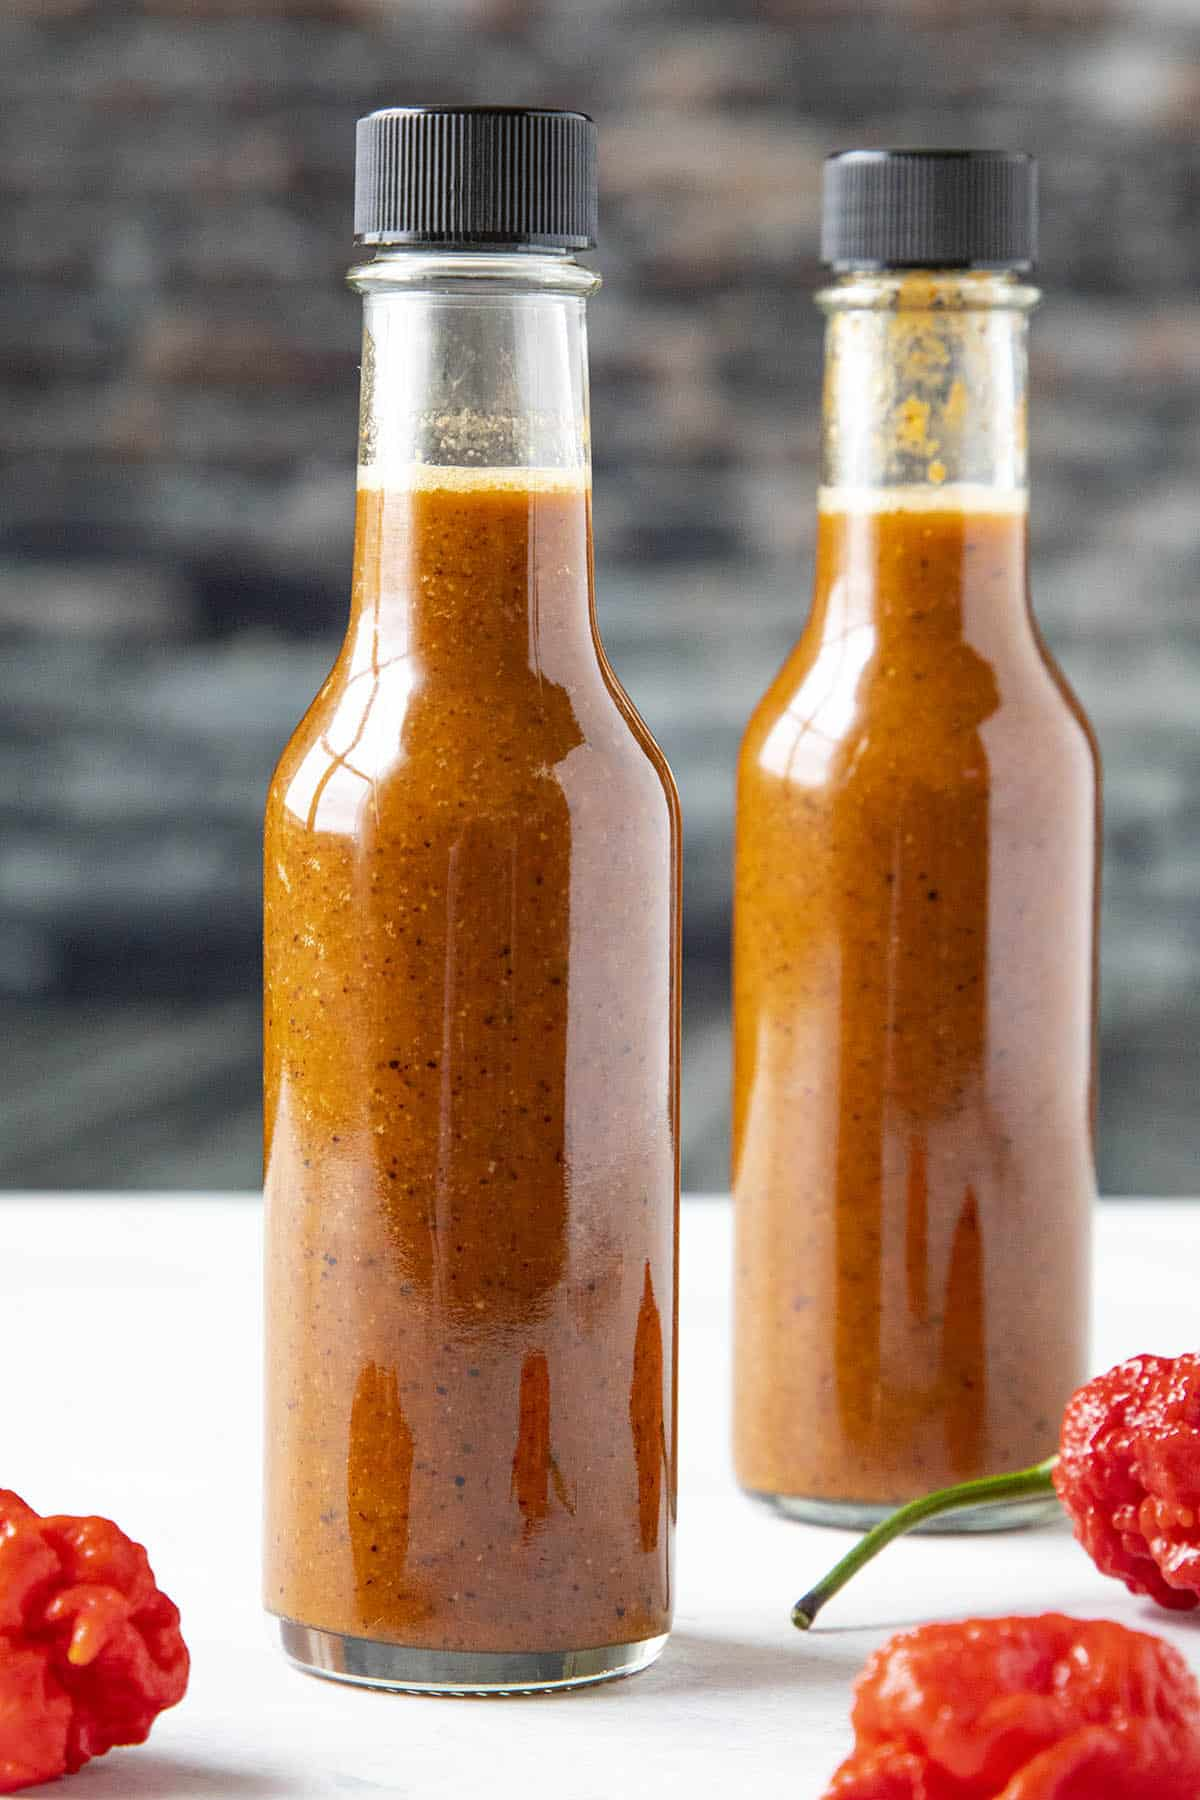 2 bottles of Carolina Reaper Hot Sauce